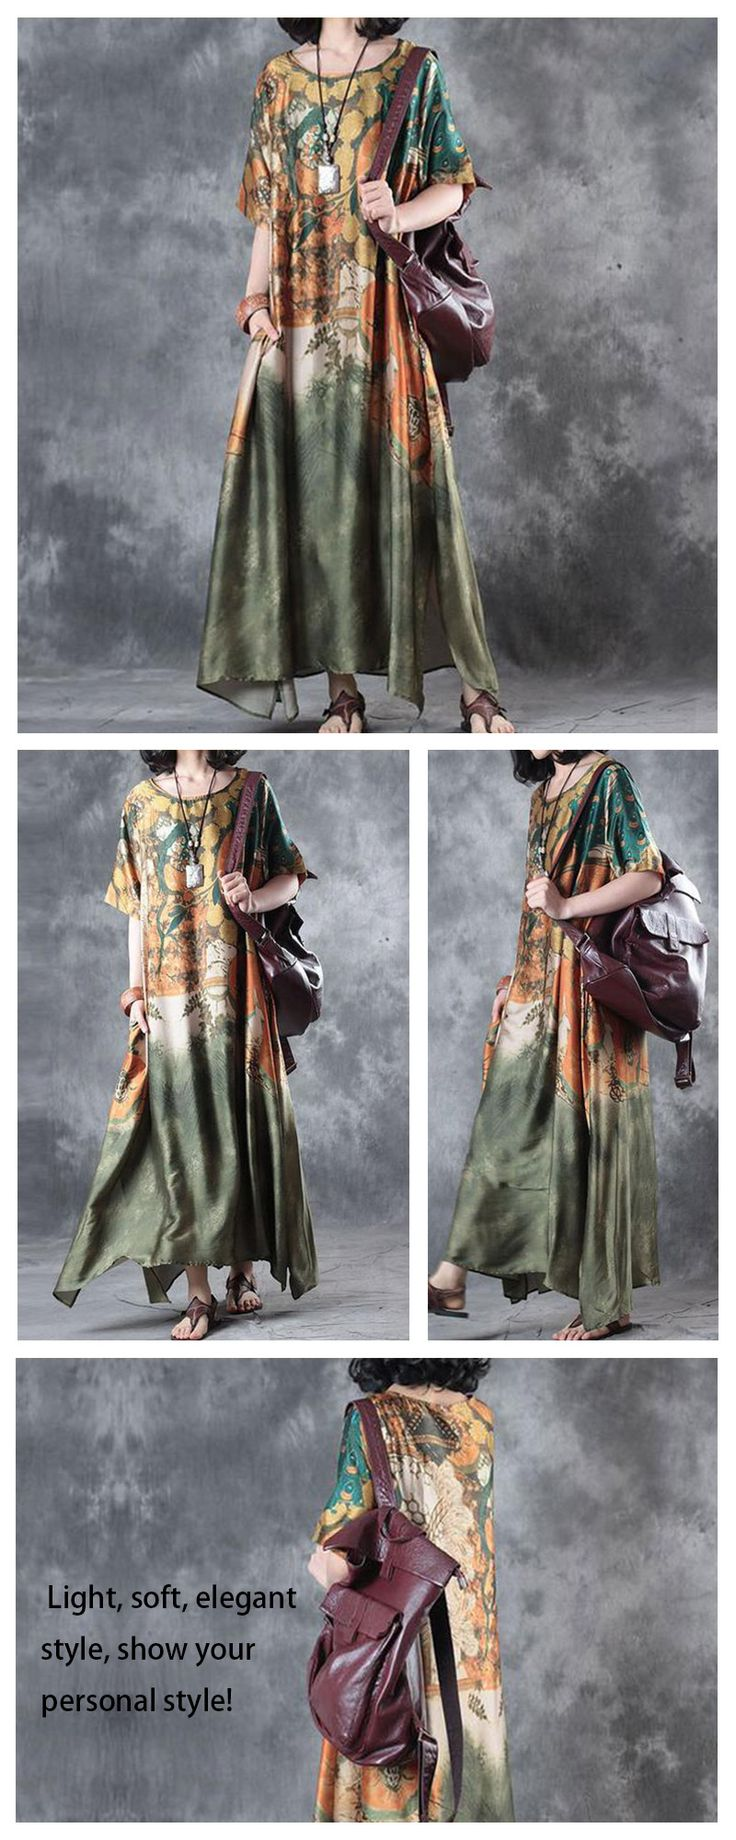 Wanna dress in literature style? Try this retro green long dress! #BUYKUD#